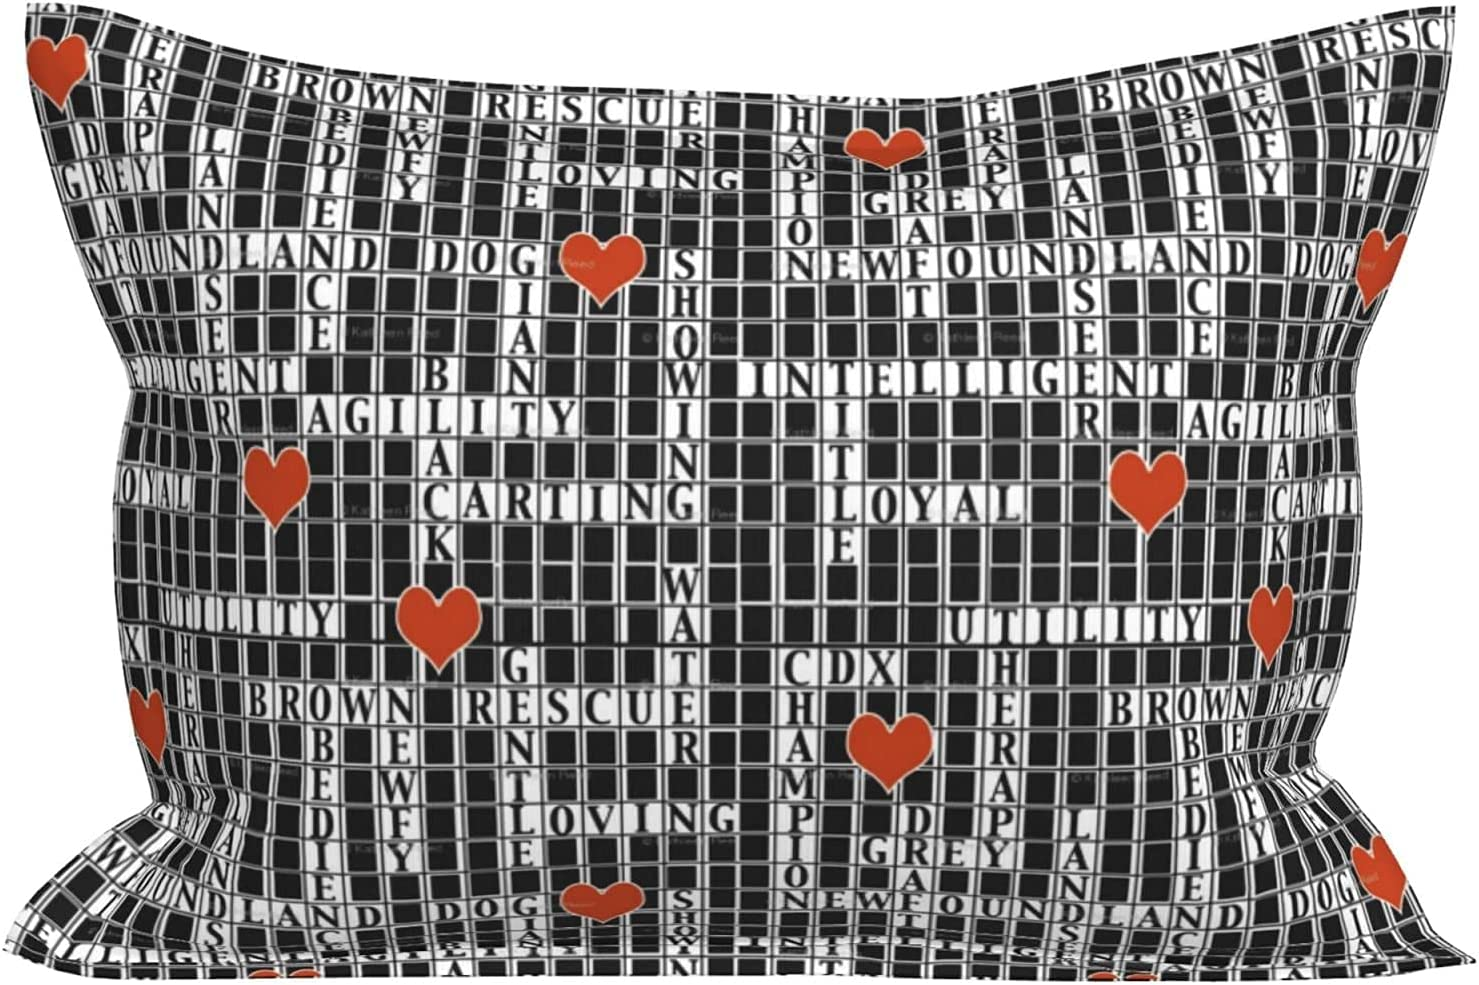 huaxian Pillowcase for Hair and lowest price Health Puzzle Colorado Springs Mall Pr Skin Crossword